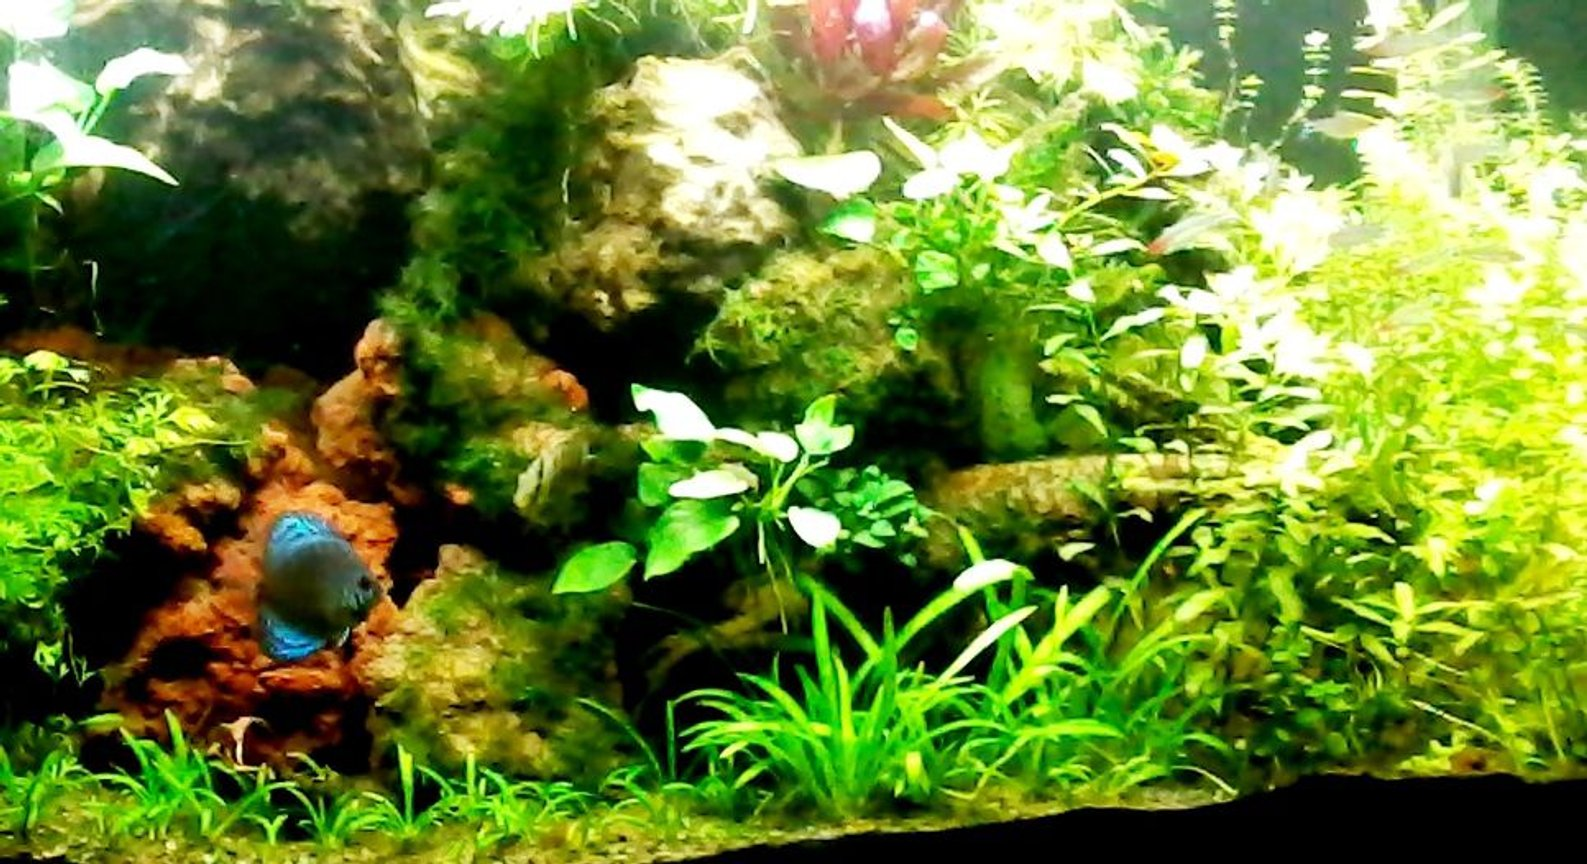 90 gallons planted tank (mostly live plants and fish) - Slice of the 90 gallon Dutch method.